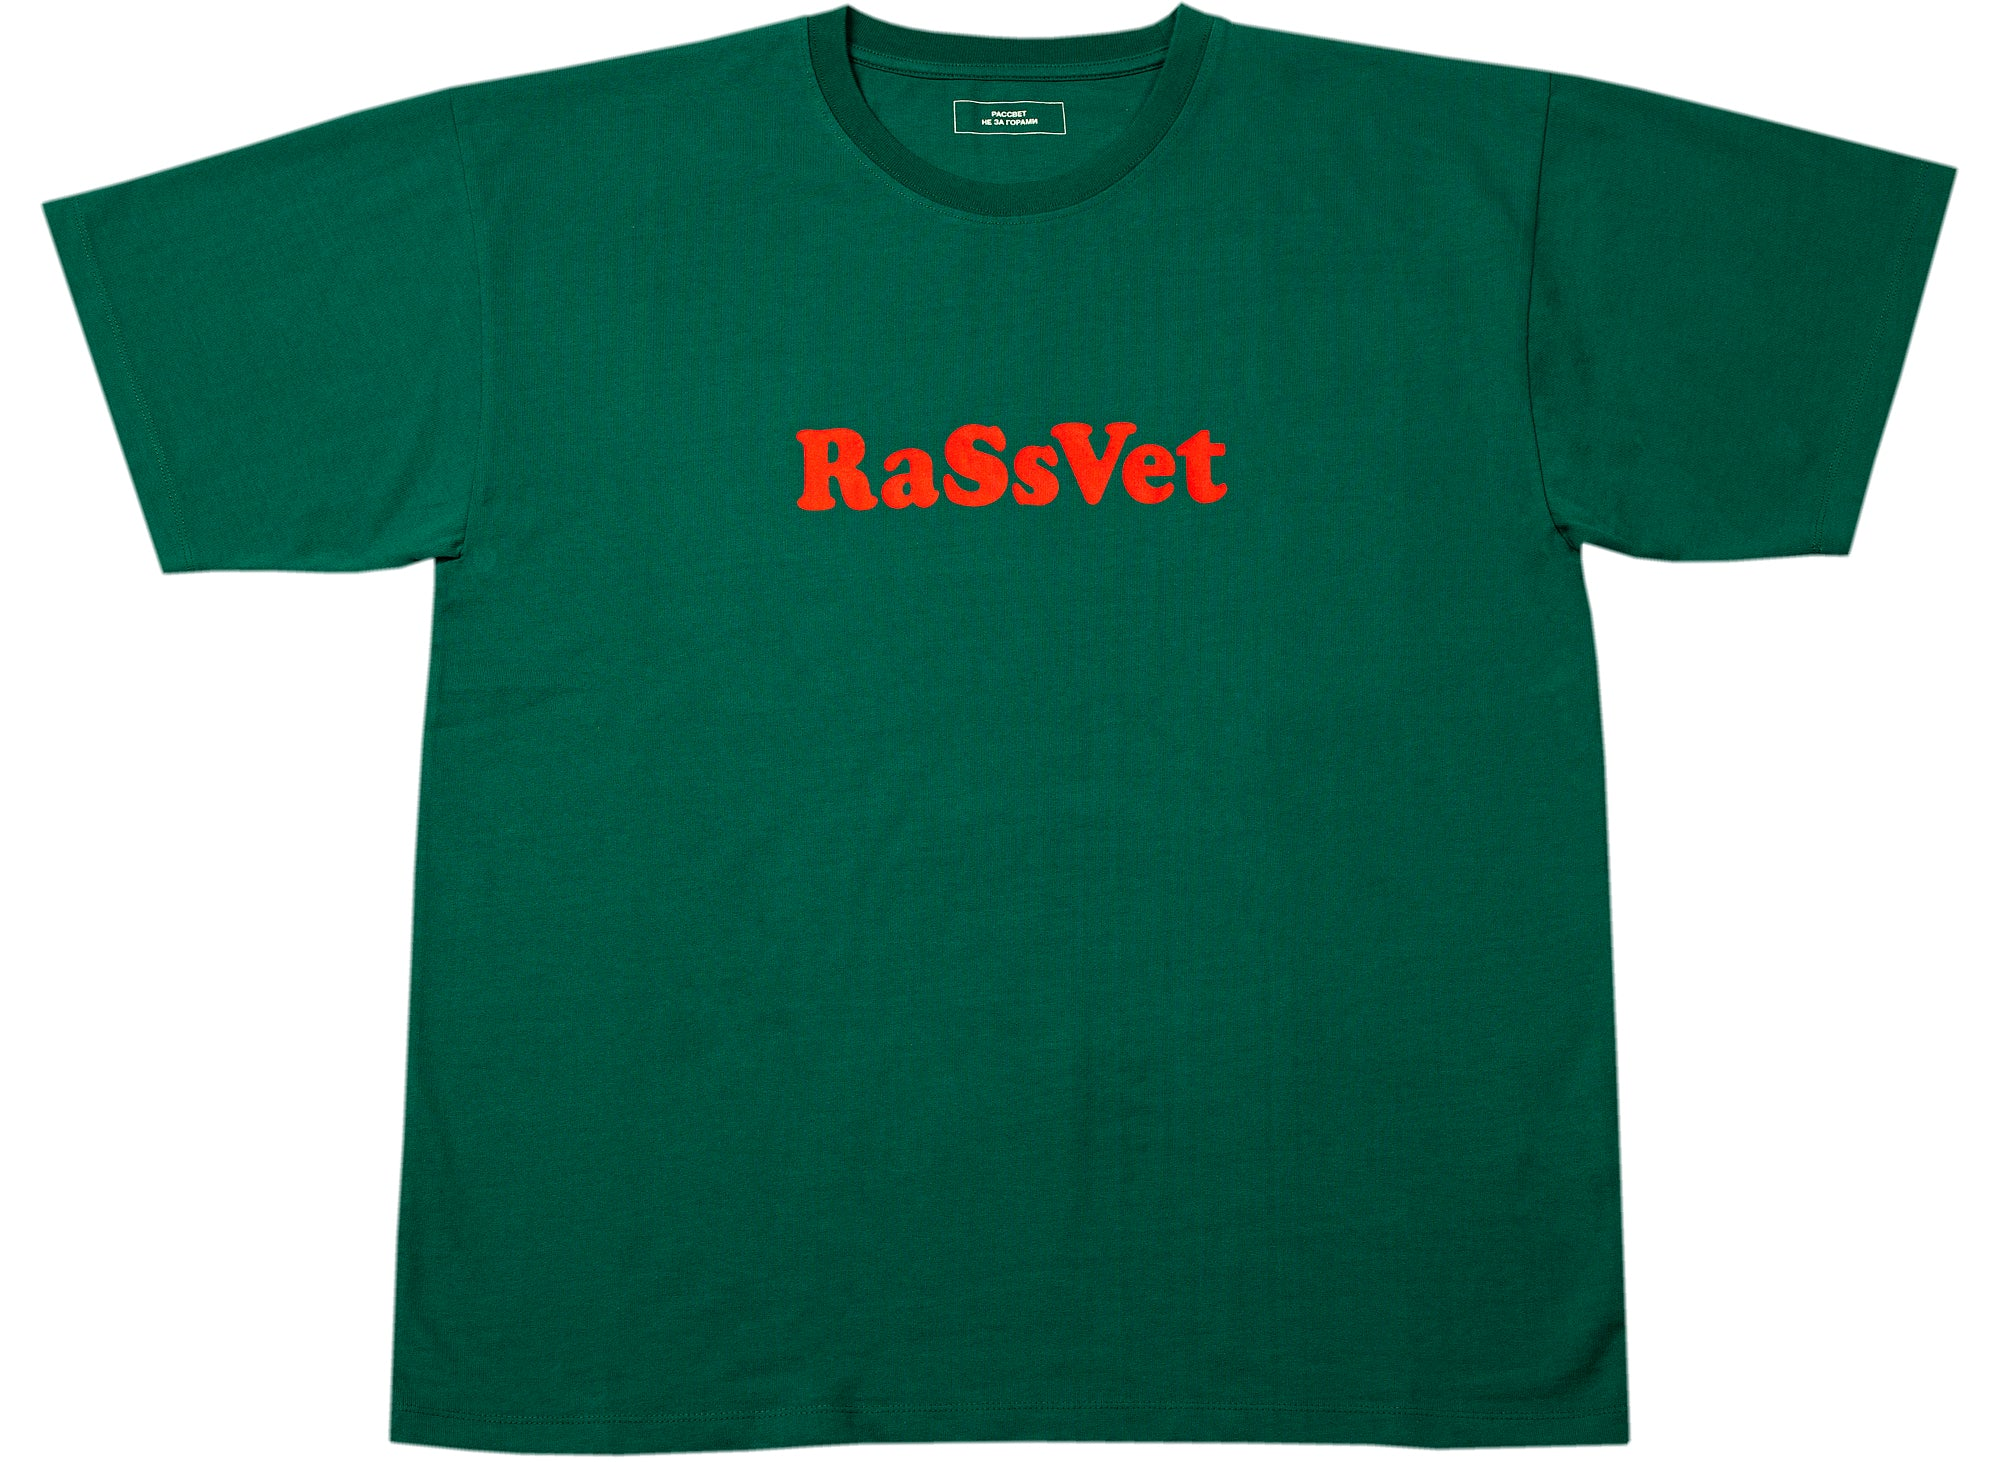 Rassvet (PACCBET) Men's T-Shirt in Dark Green